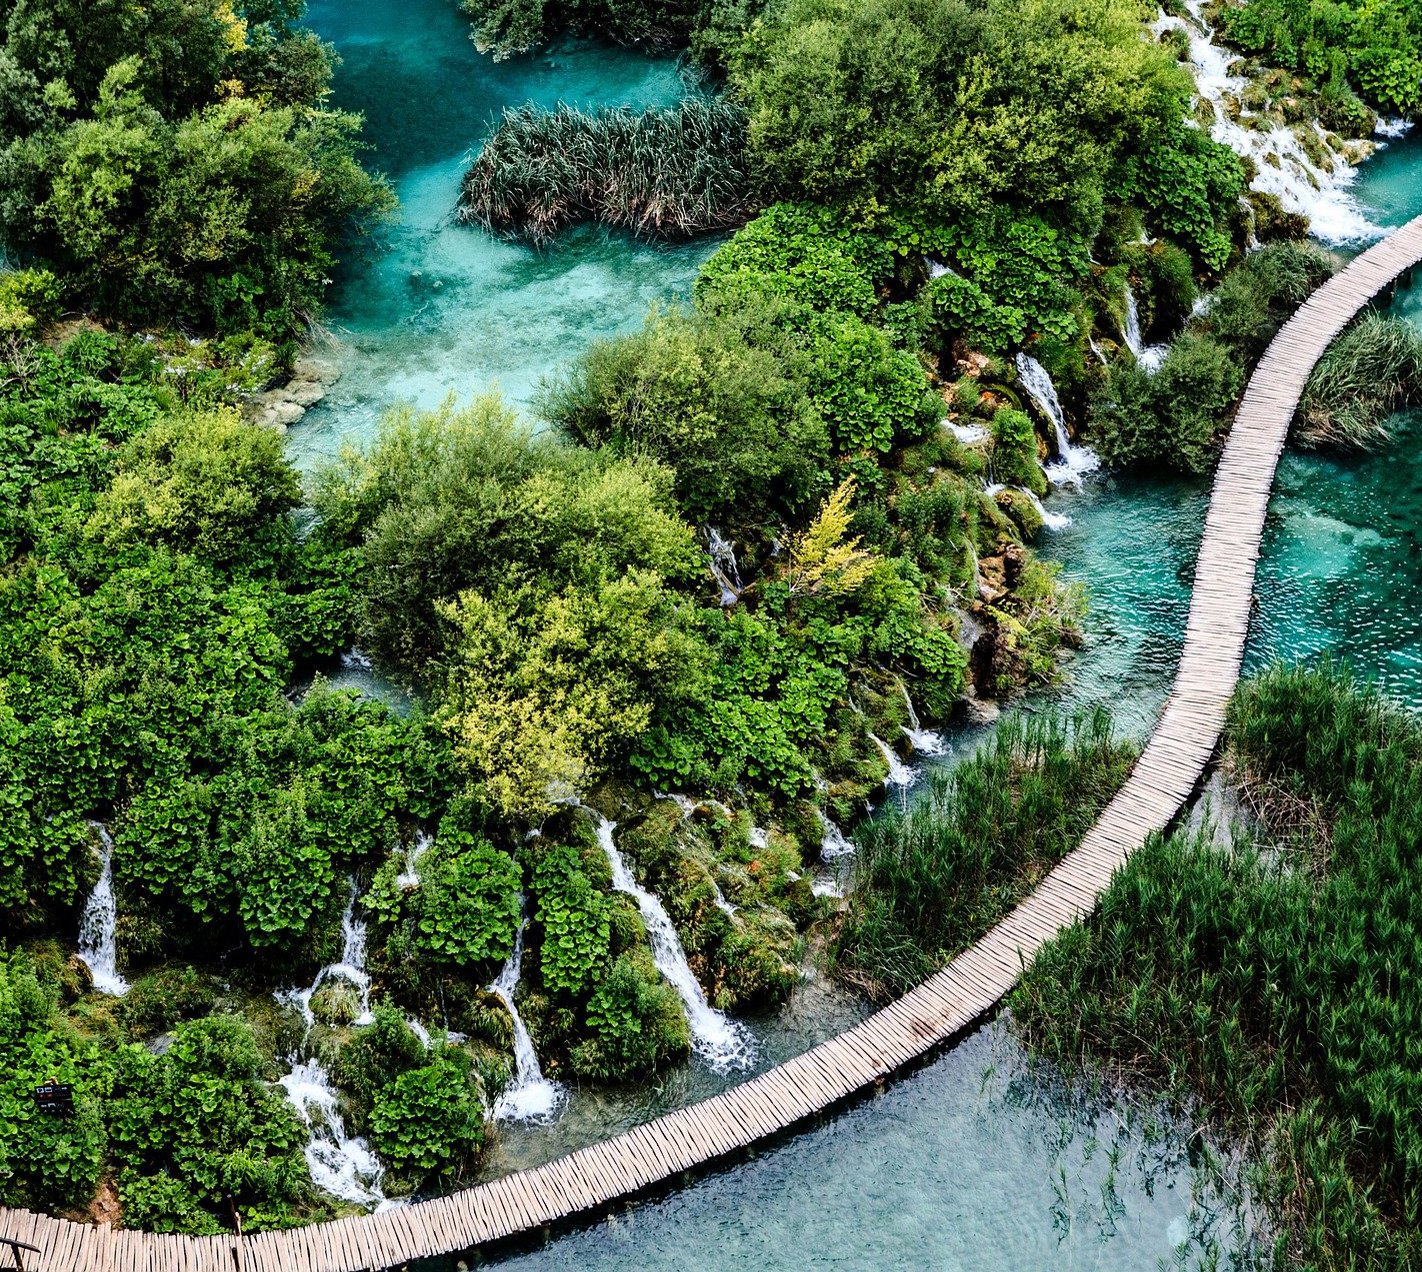 Women's Travel Club Croatia Tour - Plitvice Lakes